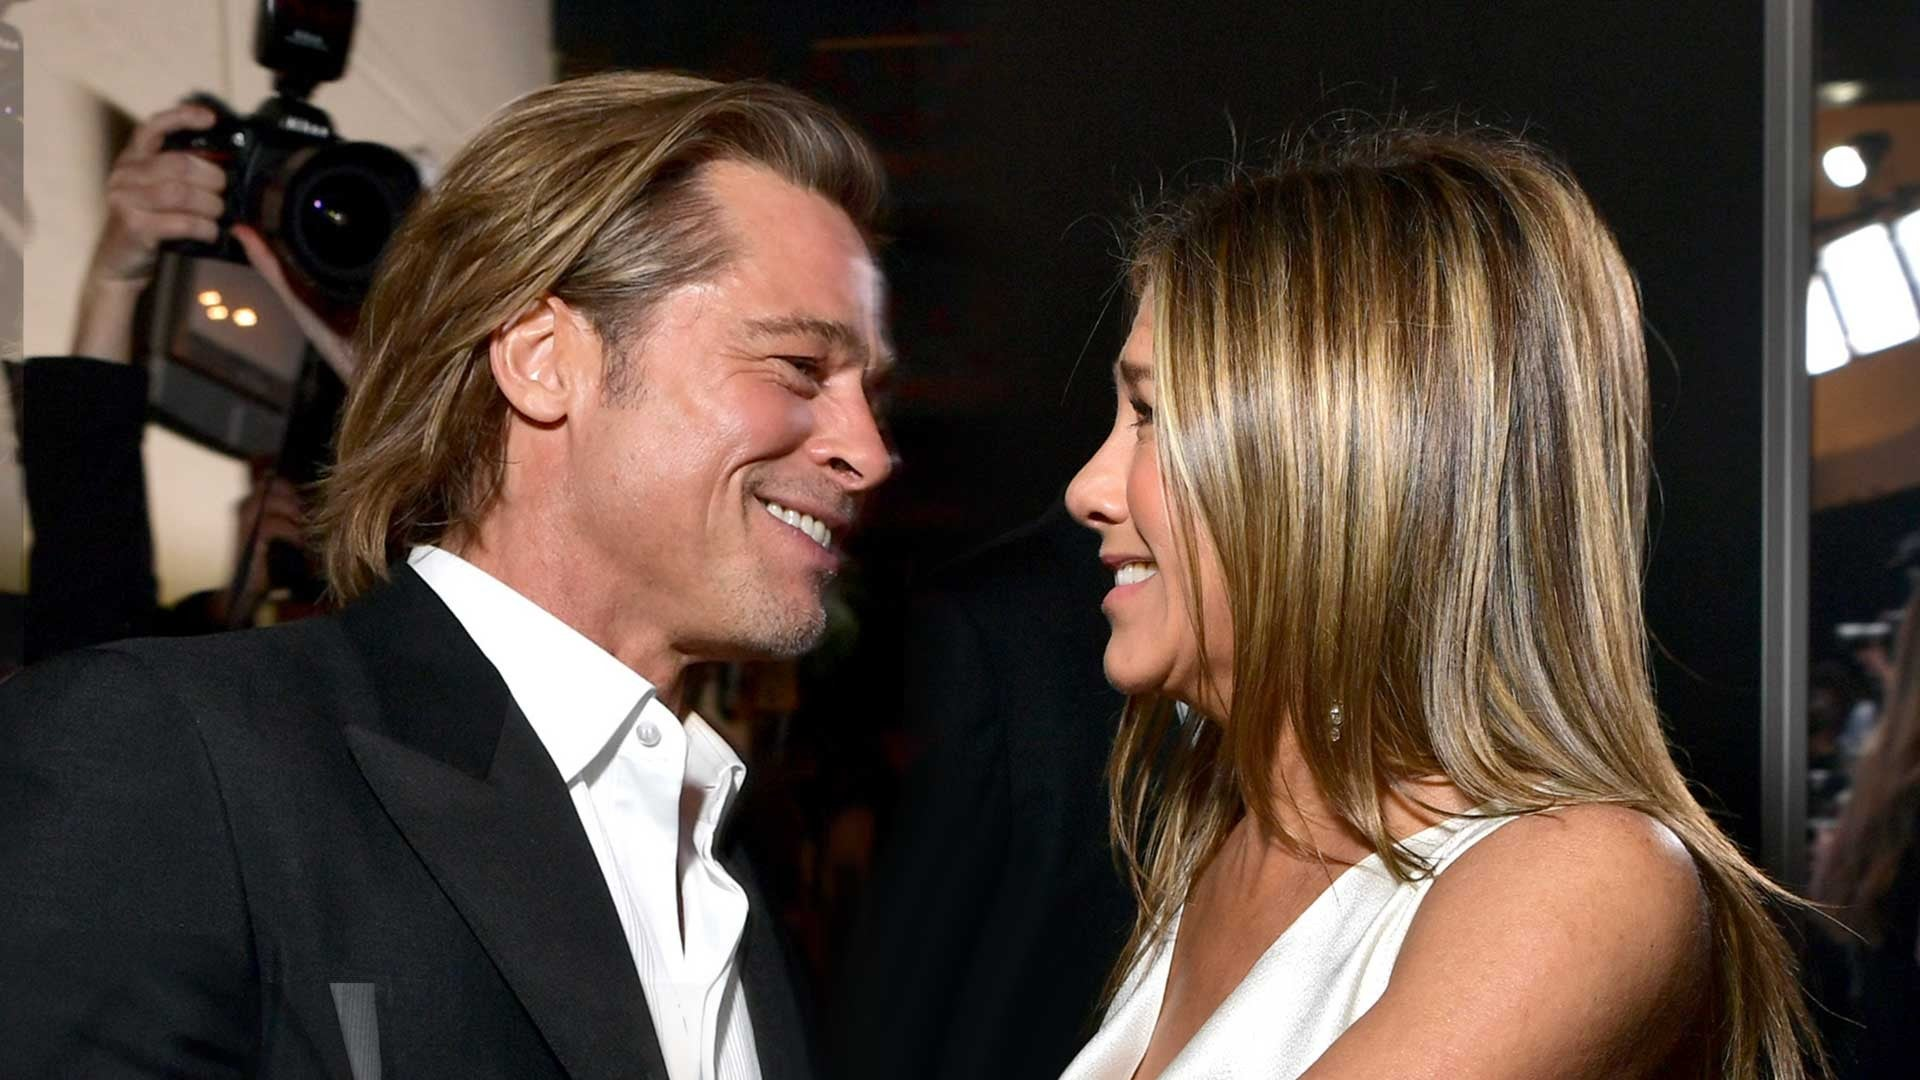 Brad Pitt Has Apologized to Jennifer Aniston for 'Many Things' in Their Relationship, Source Says (Exclusive) | Entertainment Tonight